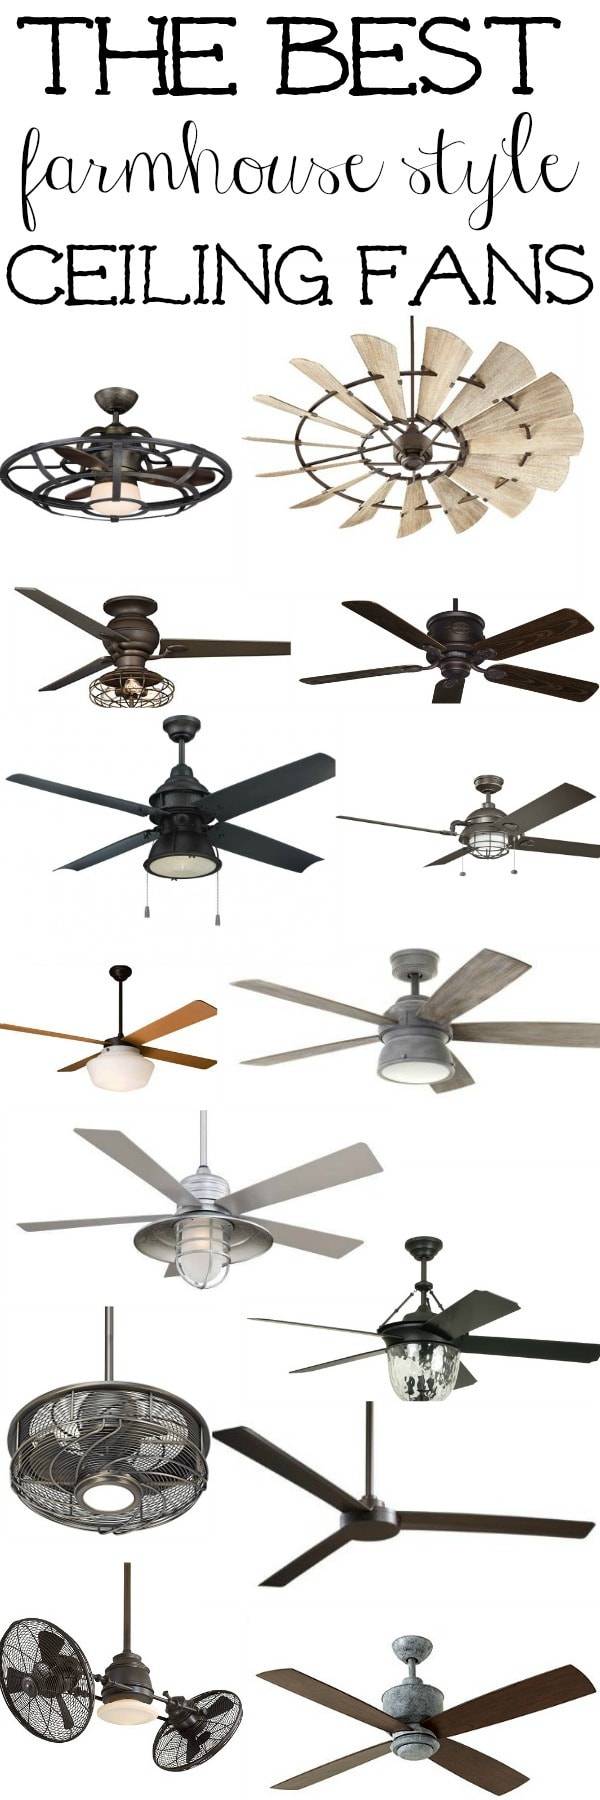 The Best Farmhouse Style Ceiling Fans A Must Pin For Cottage Or